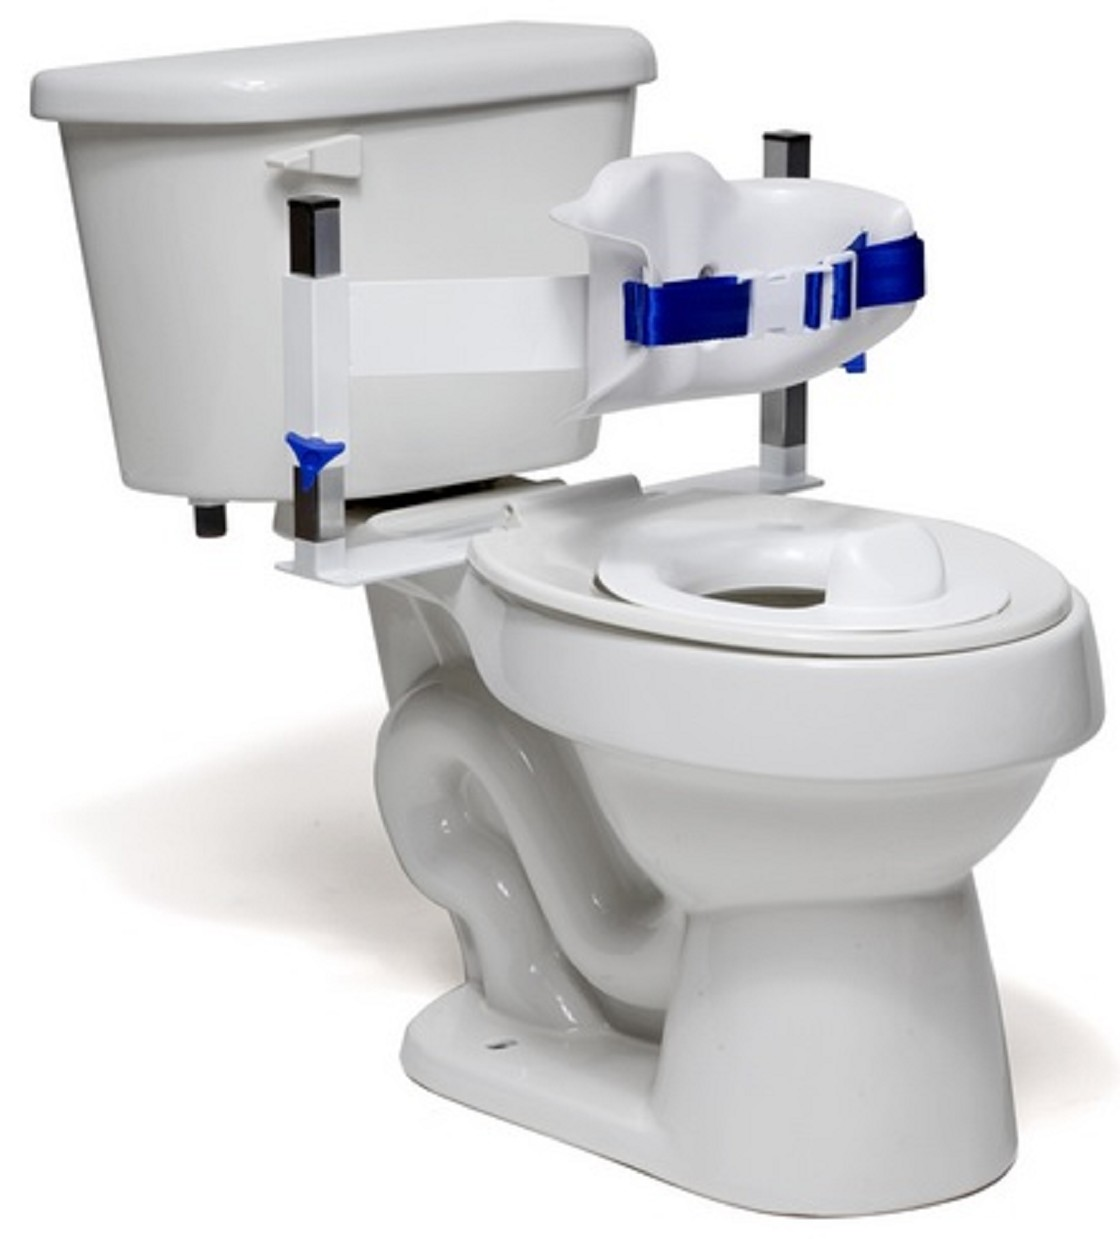 Toilet Support Systems : Pediatric special needs adaptive toilet support system